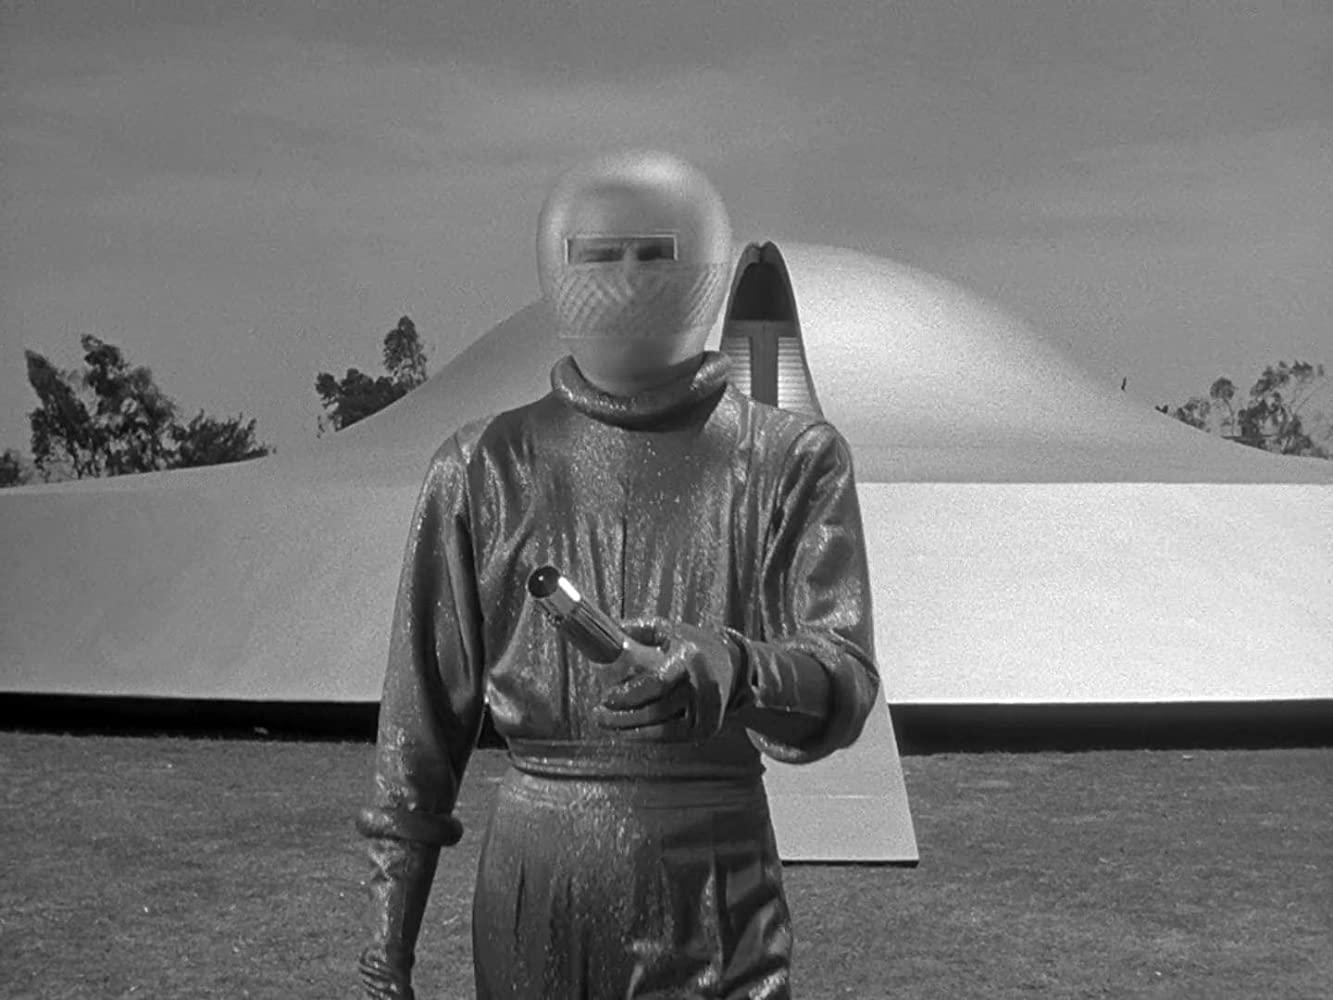 Michael Rennie in The Day the Earth Stood Still (1951)